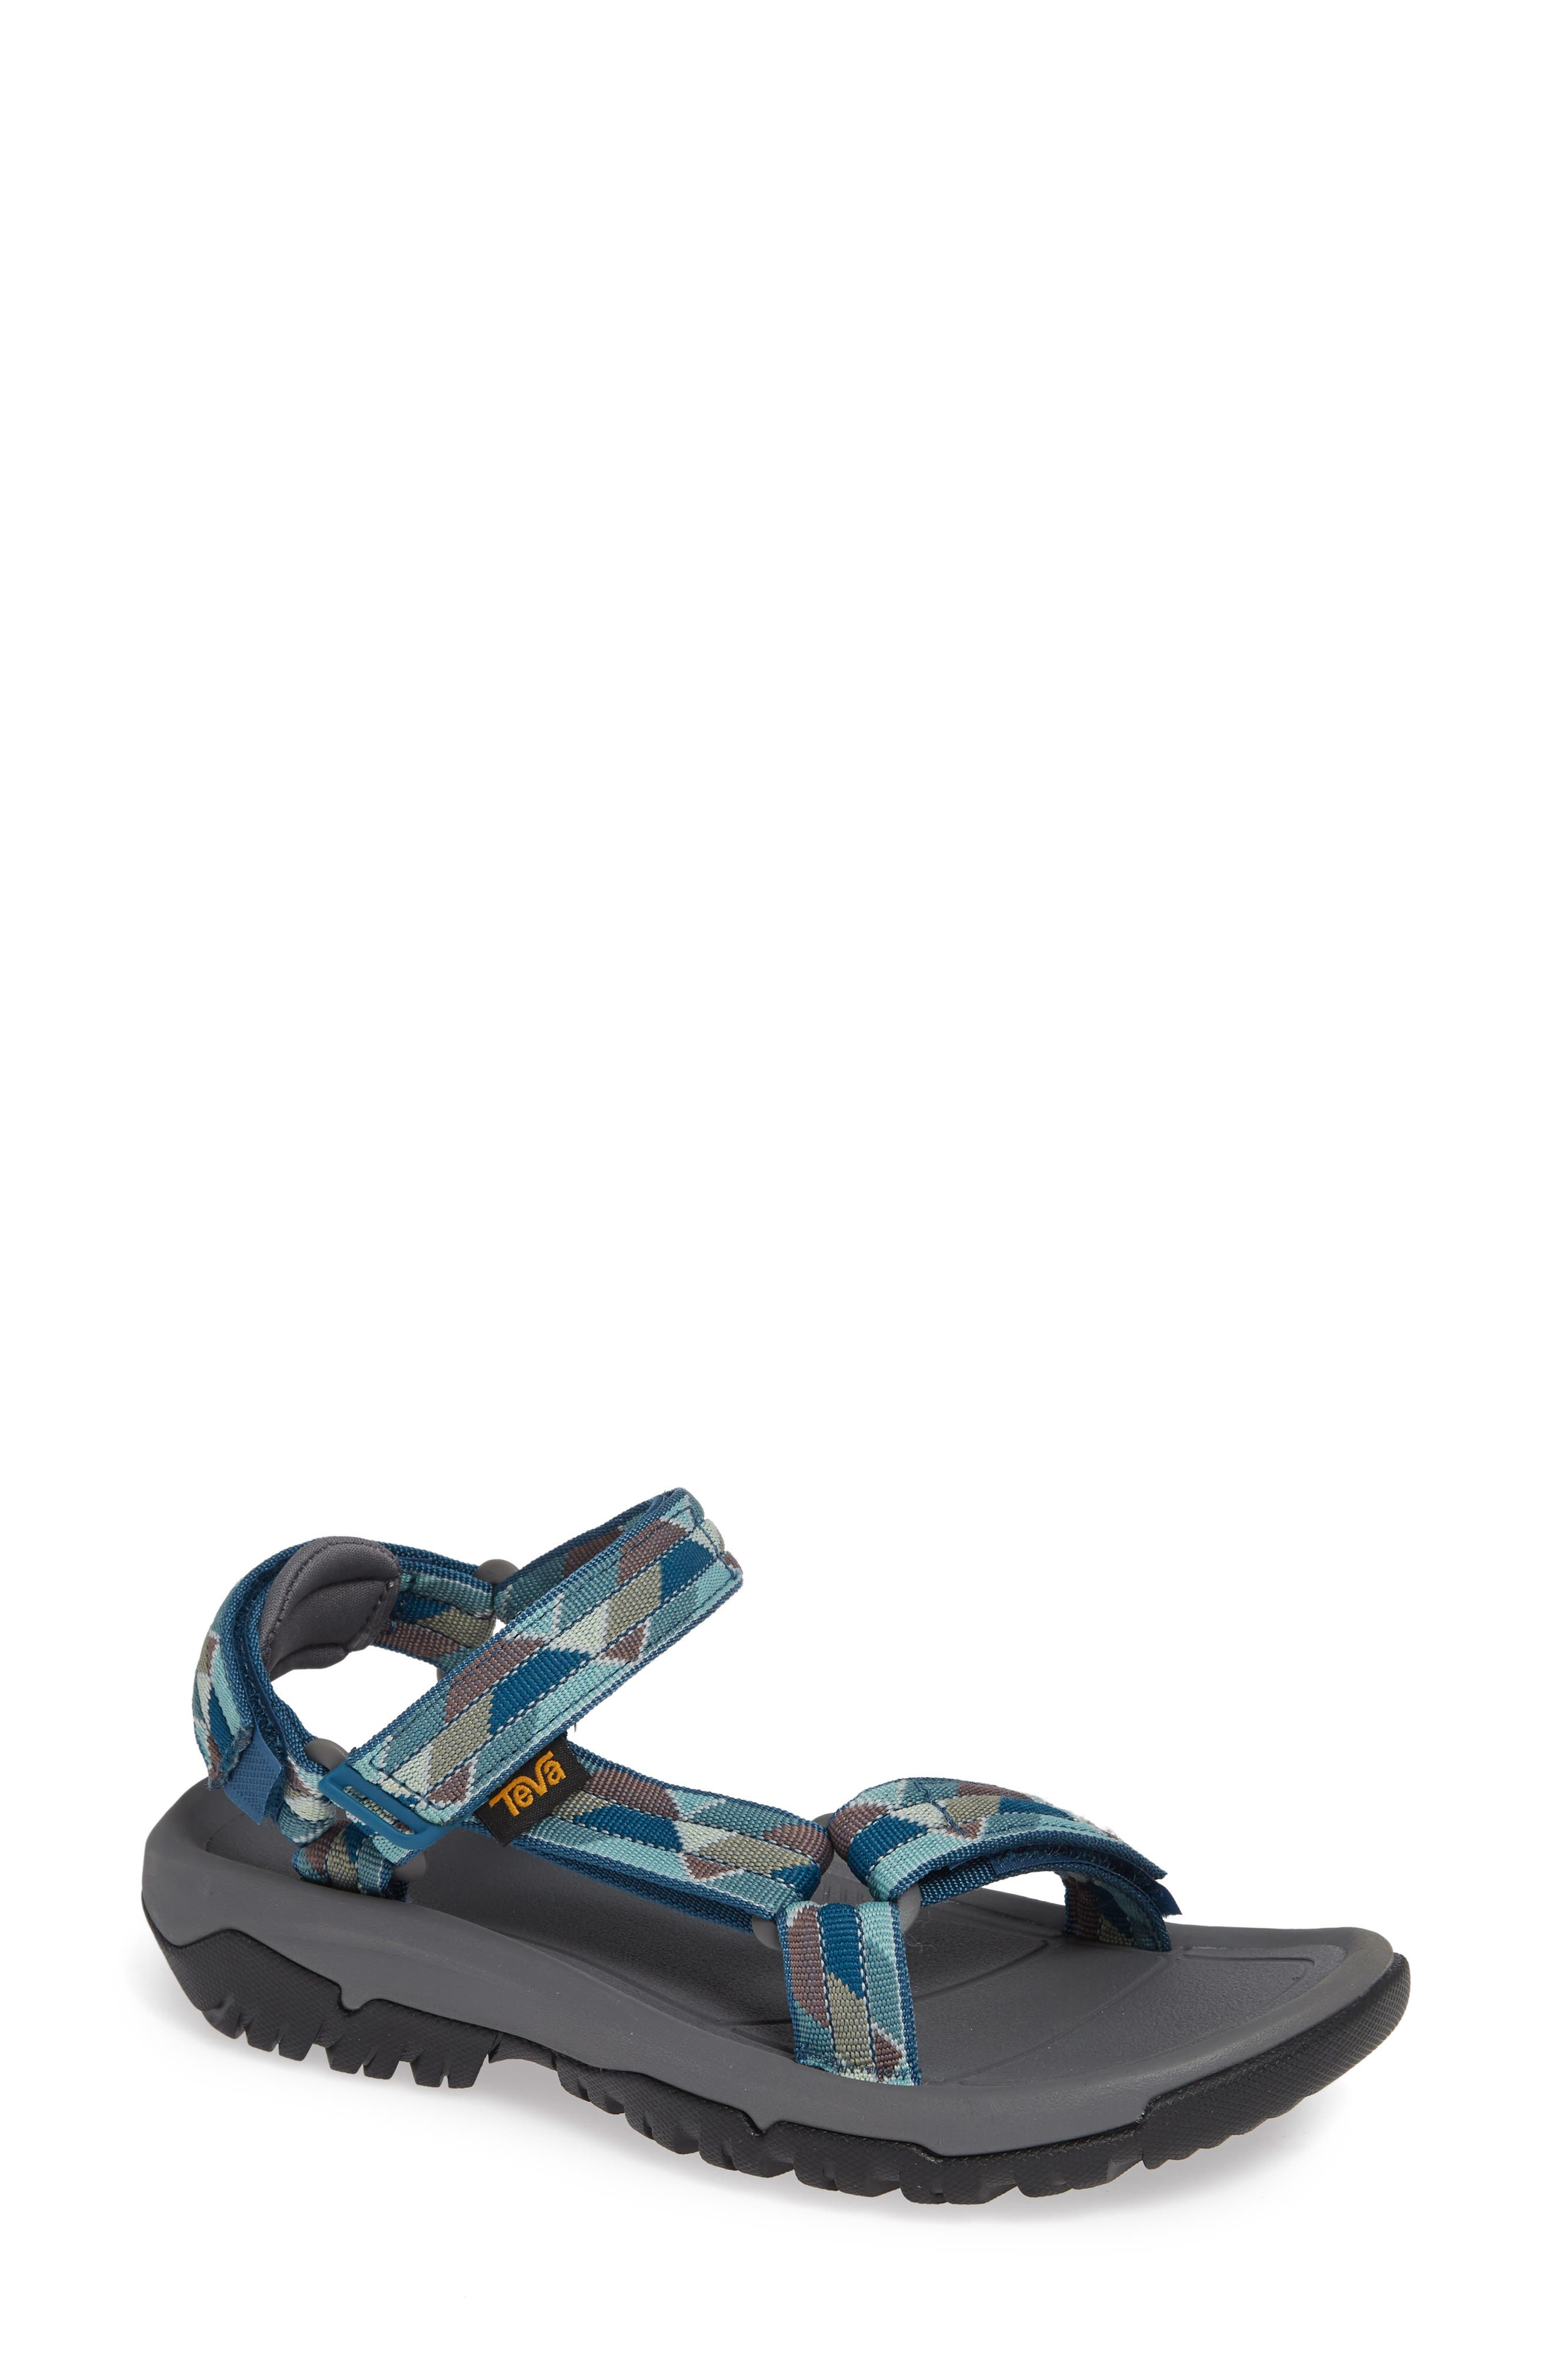 Hurricane XLT 2 Sandal,                             Main thumbnail 1, color,                             BLUE FABRIC